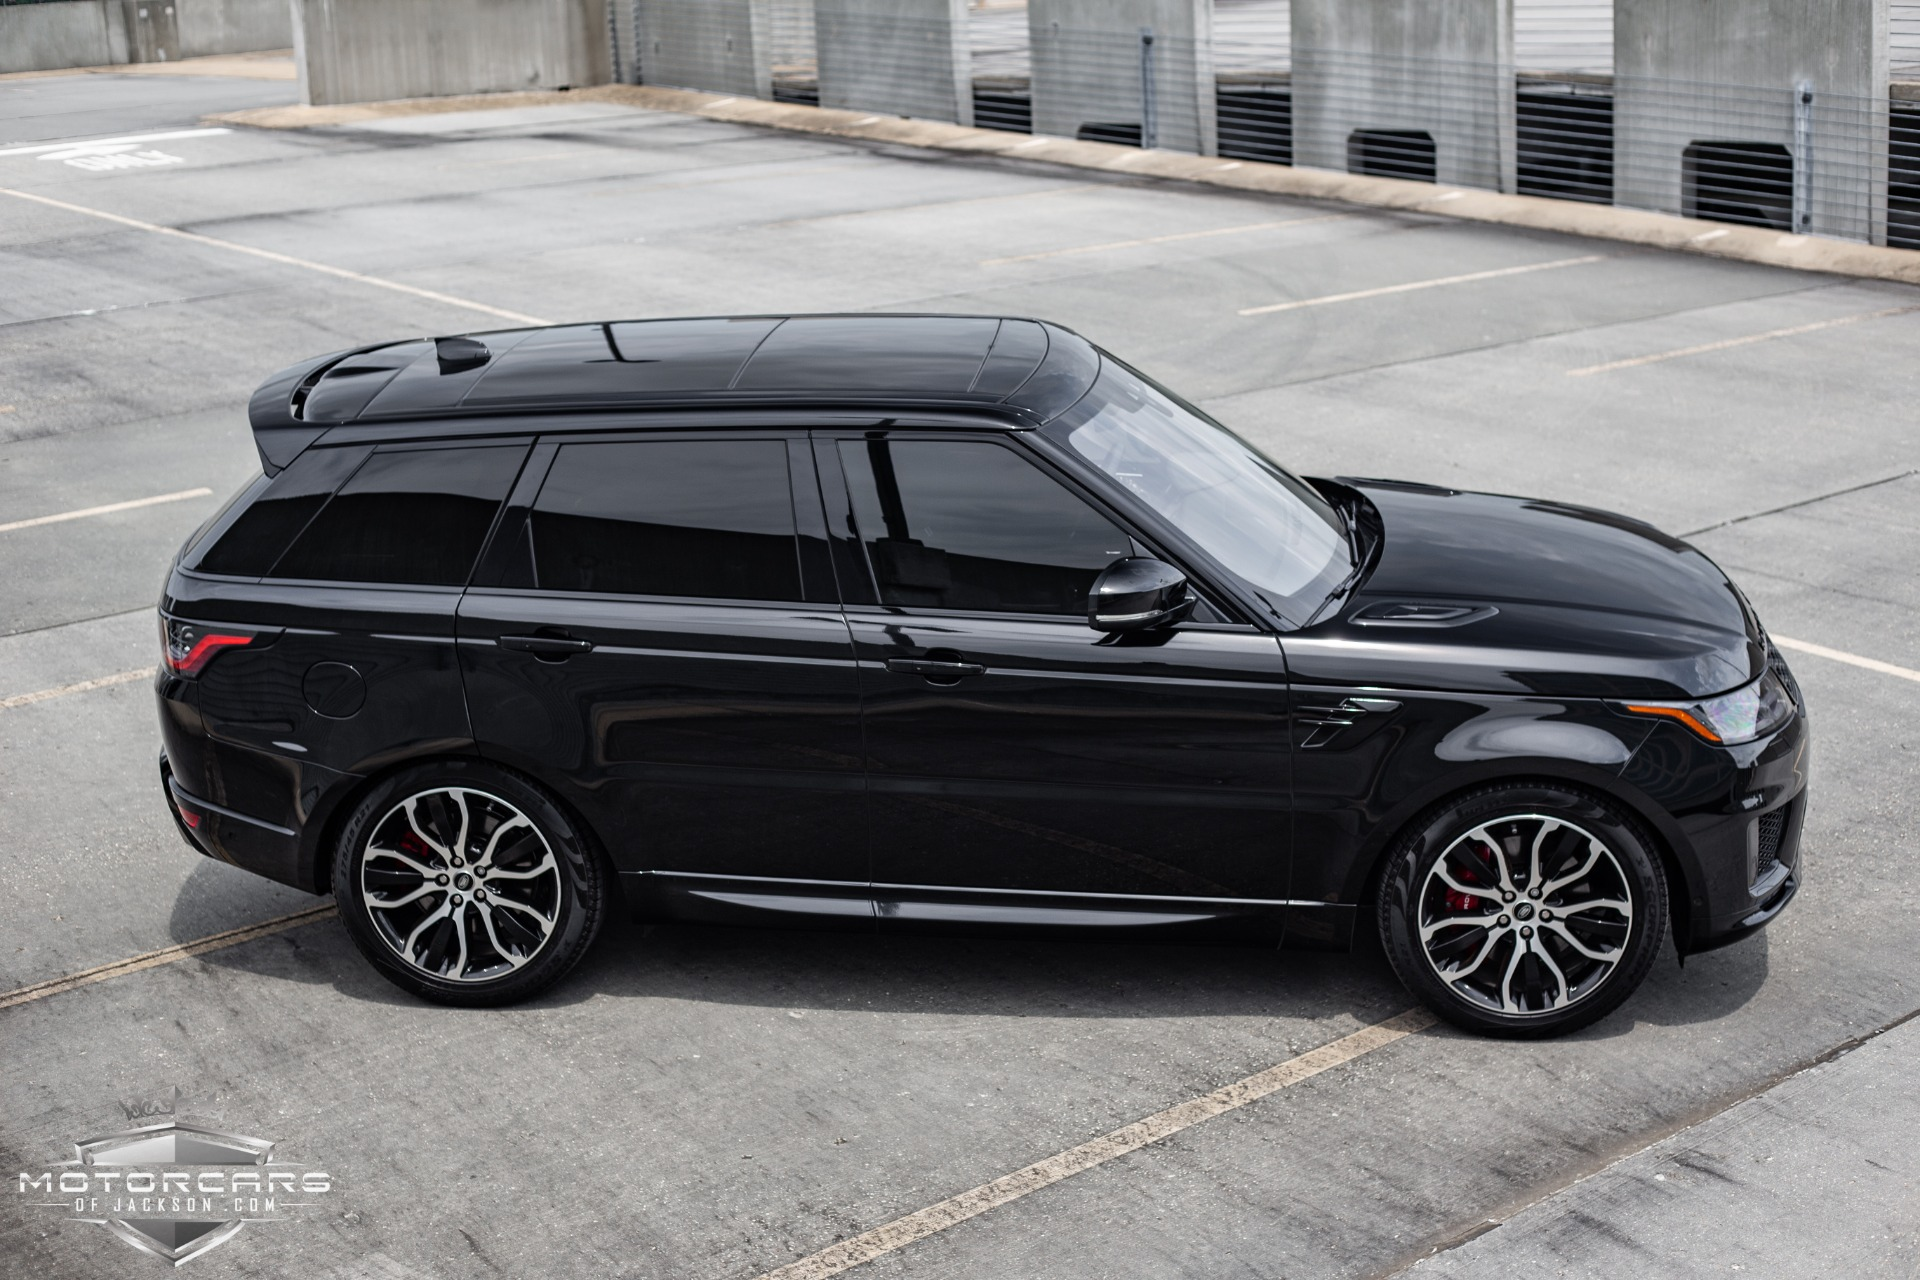 Land Rover Hse Sport: 2018 Land Rover Range Rover Sport HSE Dynamic Stock